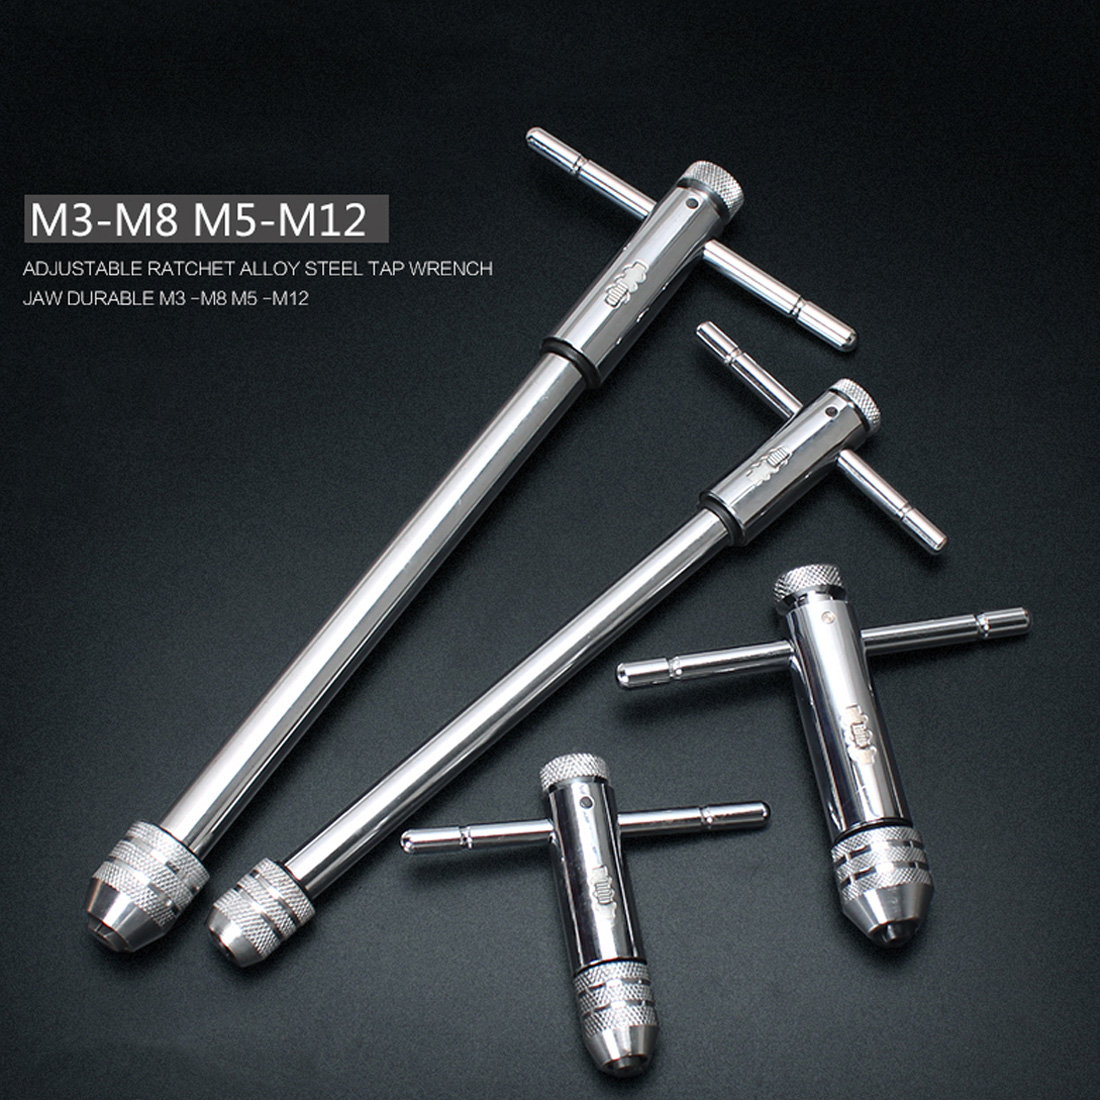 1pc M3-M8 M5-M12 Lengthen Reversible T Bar Handle Ratchet For Tap Die Taps Wrenches Wire Tapping Wrench Adjustable Holder Tool